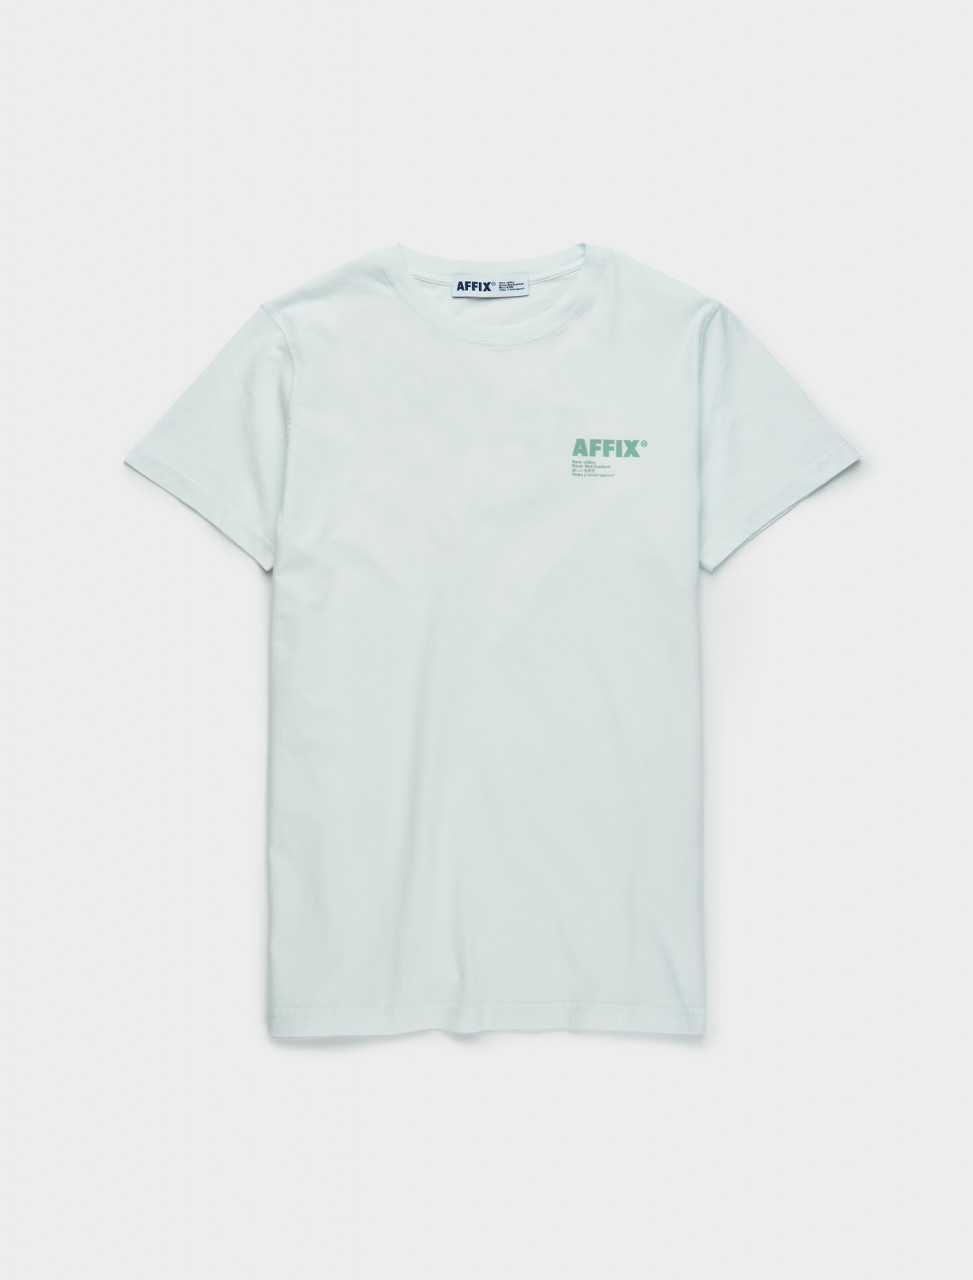 347-AW20TS08-LM AFFIX Standardised Logo T-Shirt in Light Mint